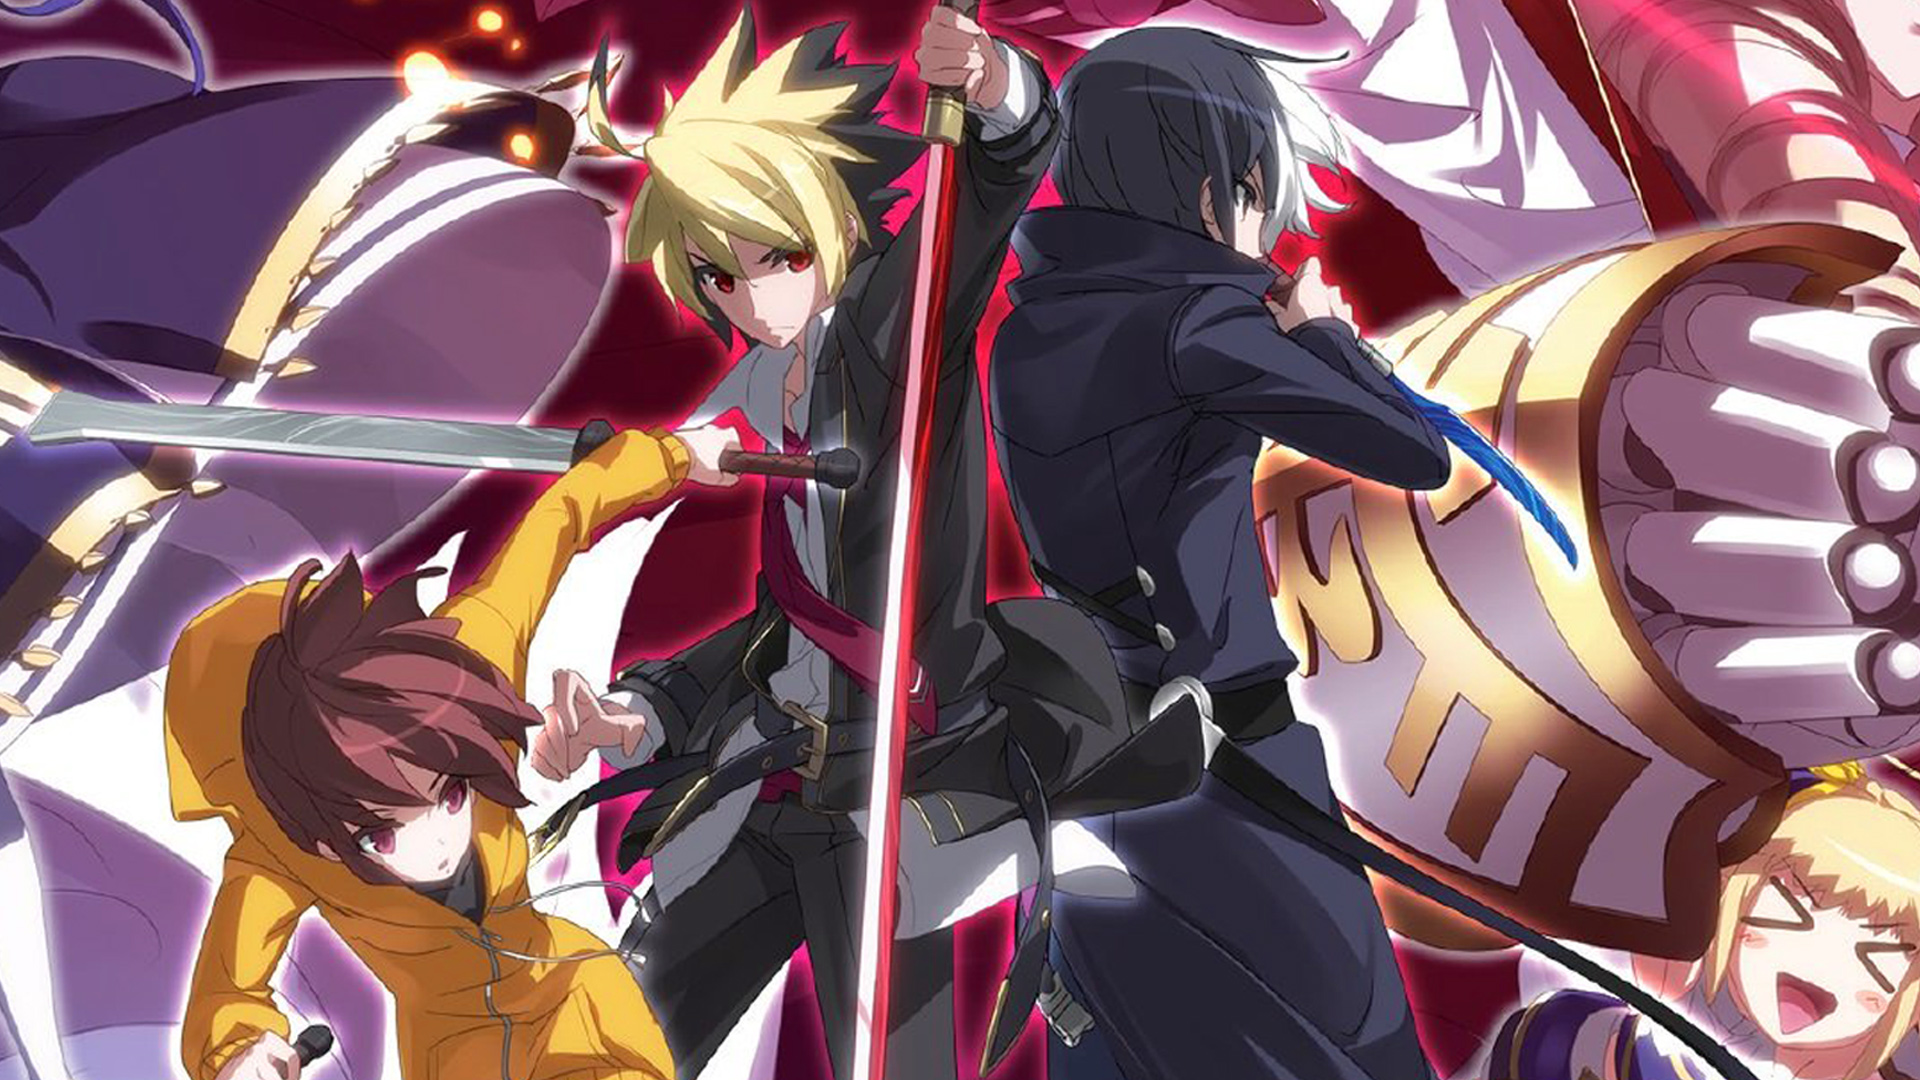 Under Night in Birth Exe Late[st]